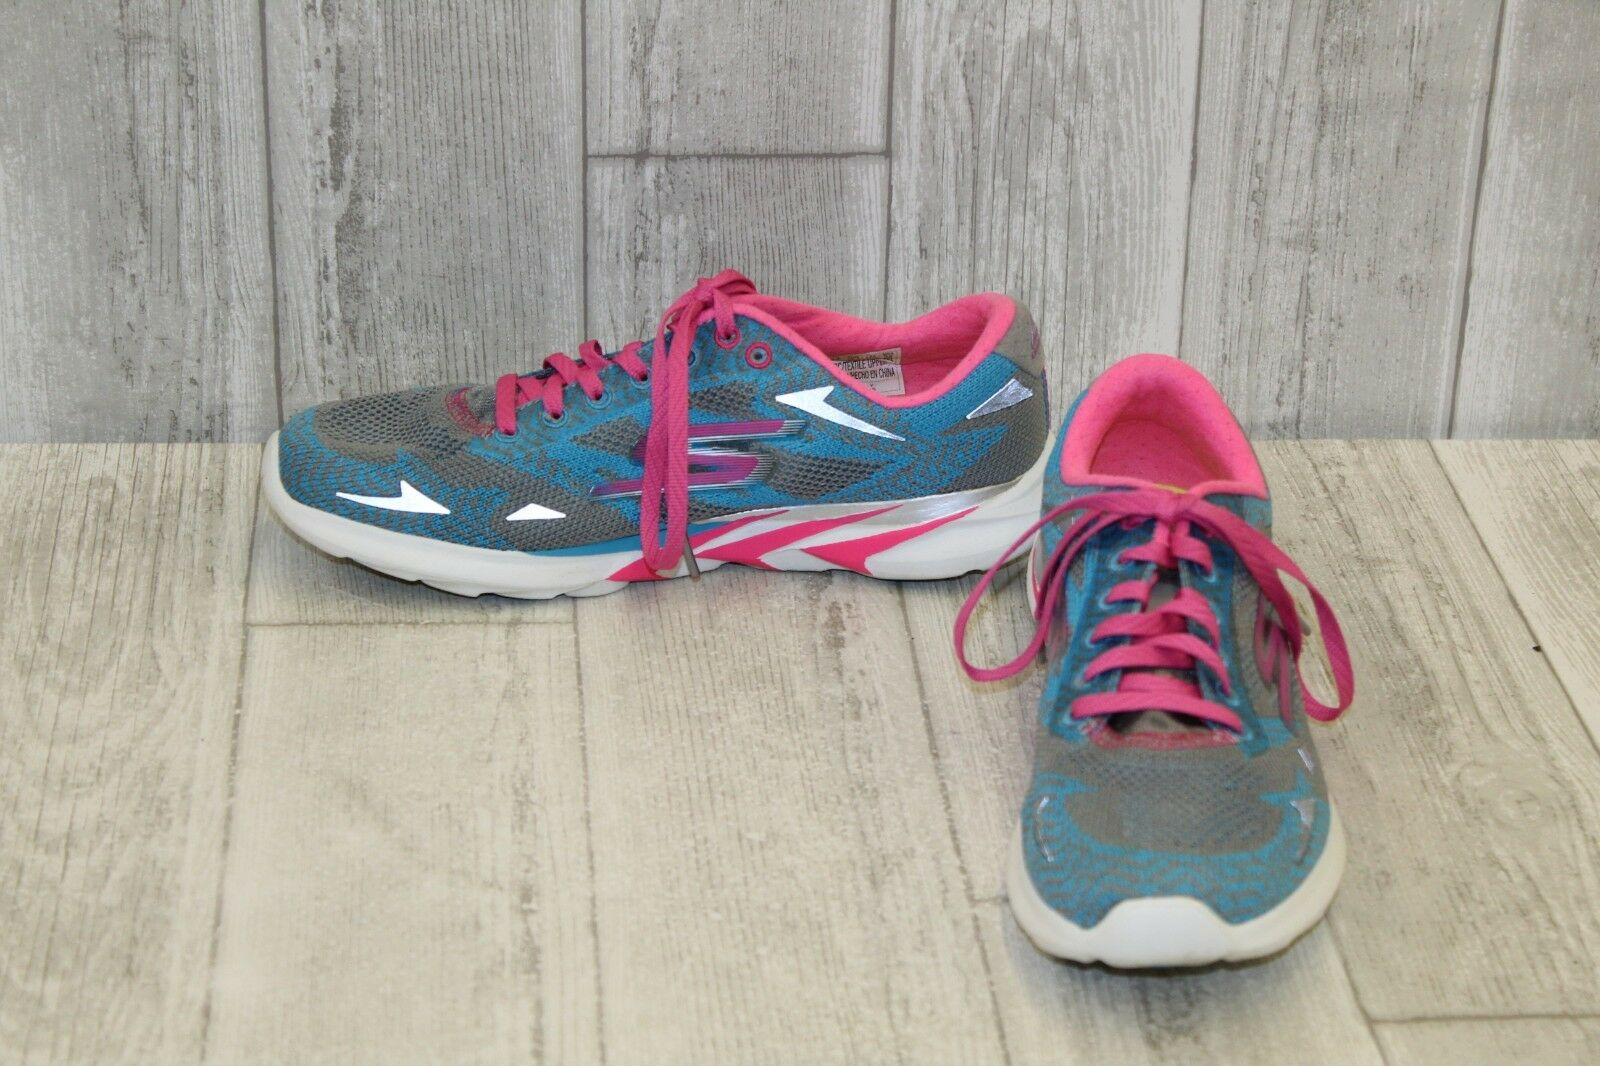 Skechers GOmeb Speed 3 2016 Running shoes, Women's Size 7.5, Charcoal bluee Pink